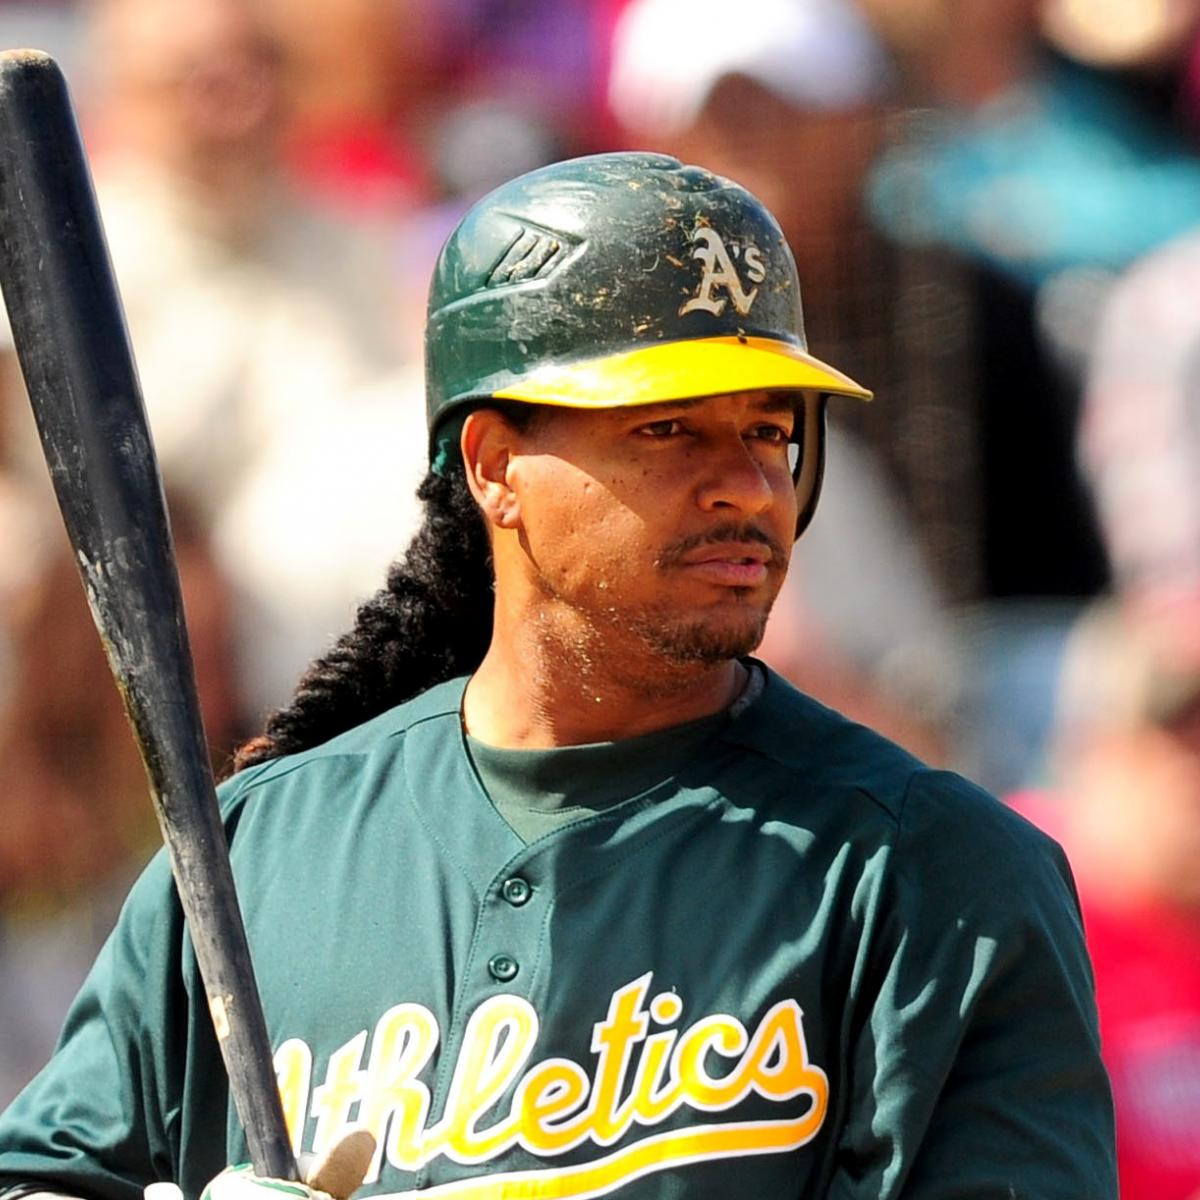 Oakland A's: Pros And Cons Of Manny Ramirez's Return To